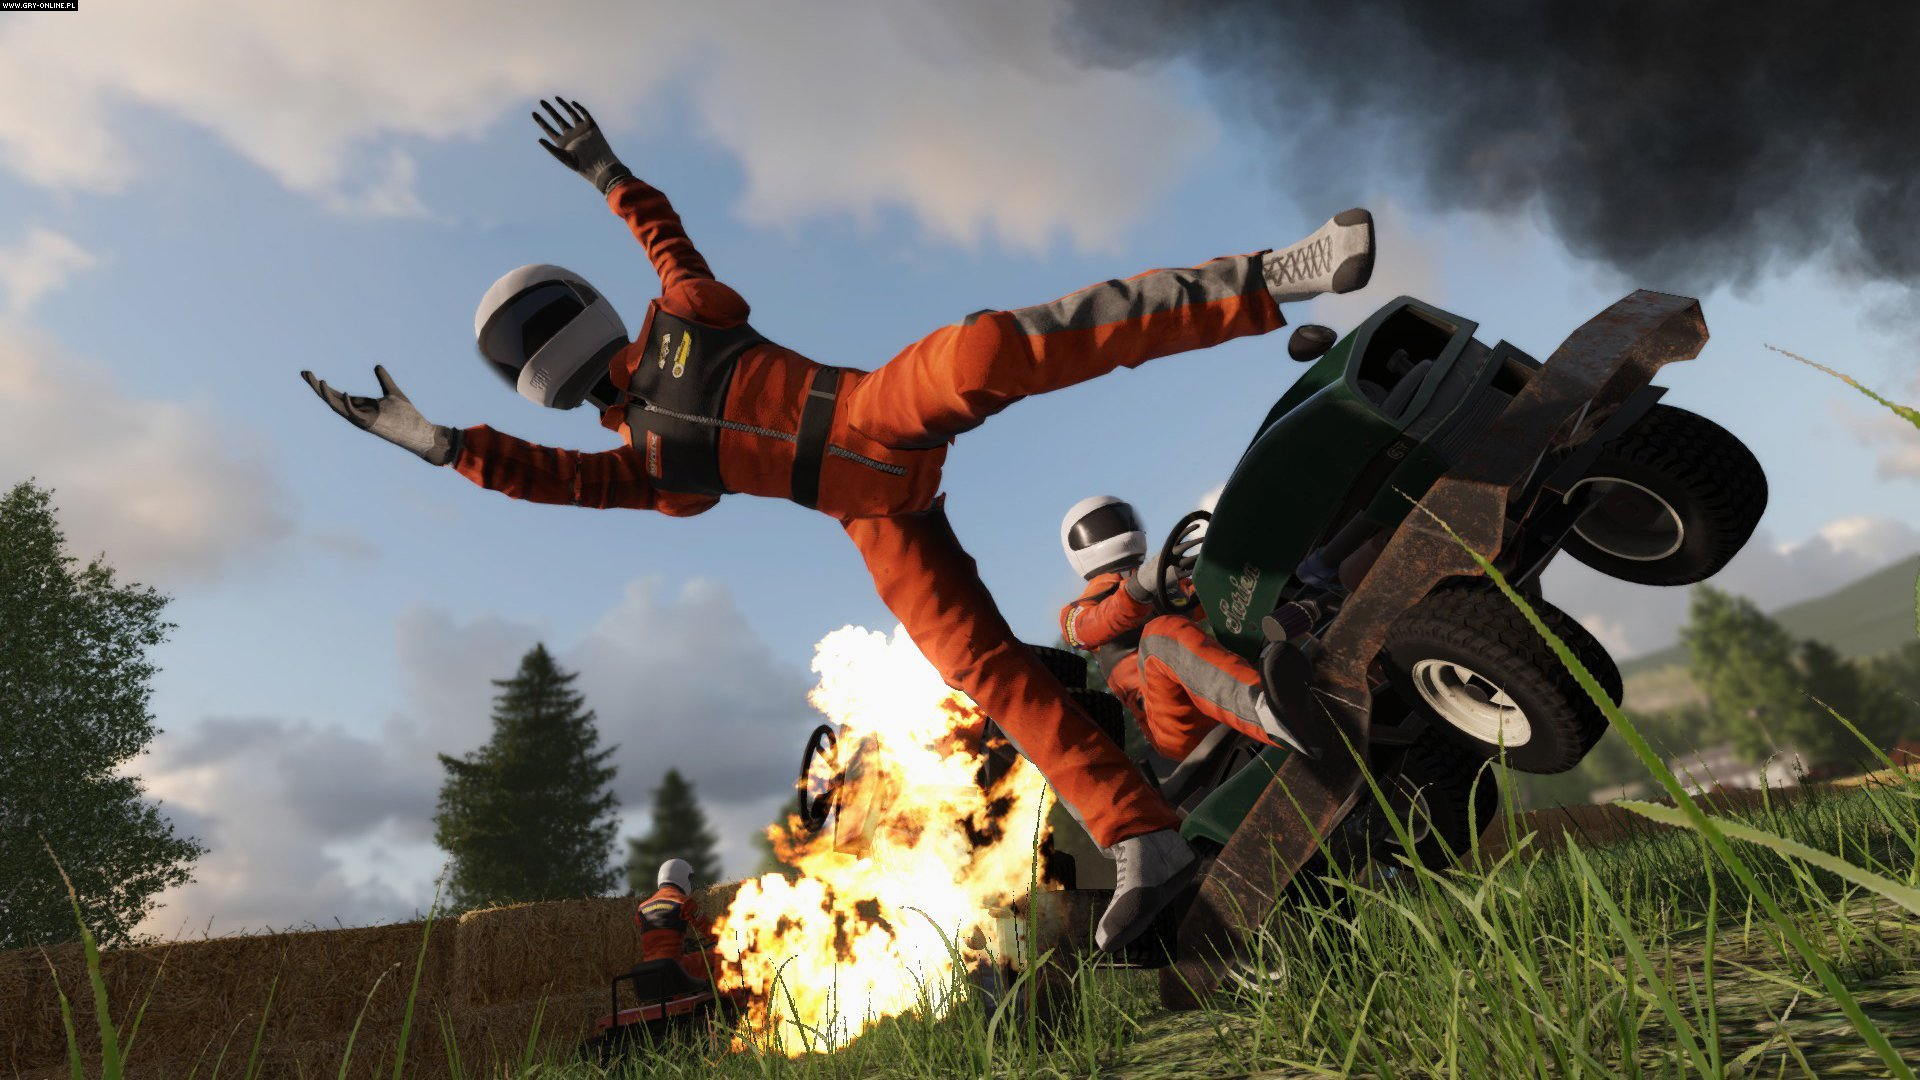 Wreckfest PC, PS4, XONE Games Image 11/71, Bugbear Entertainment, THQ Nordic / Nordic Games